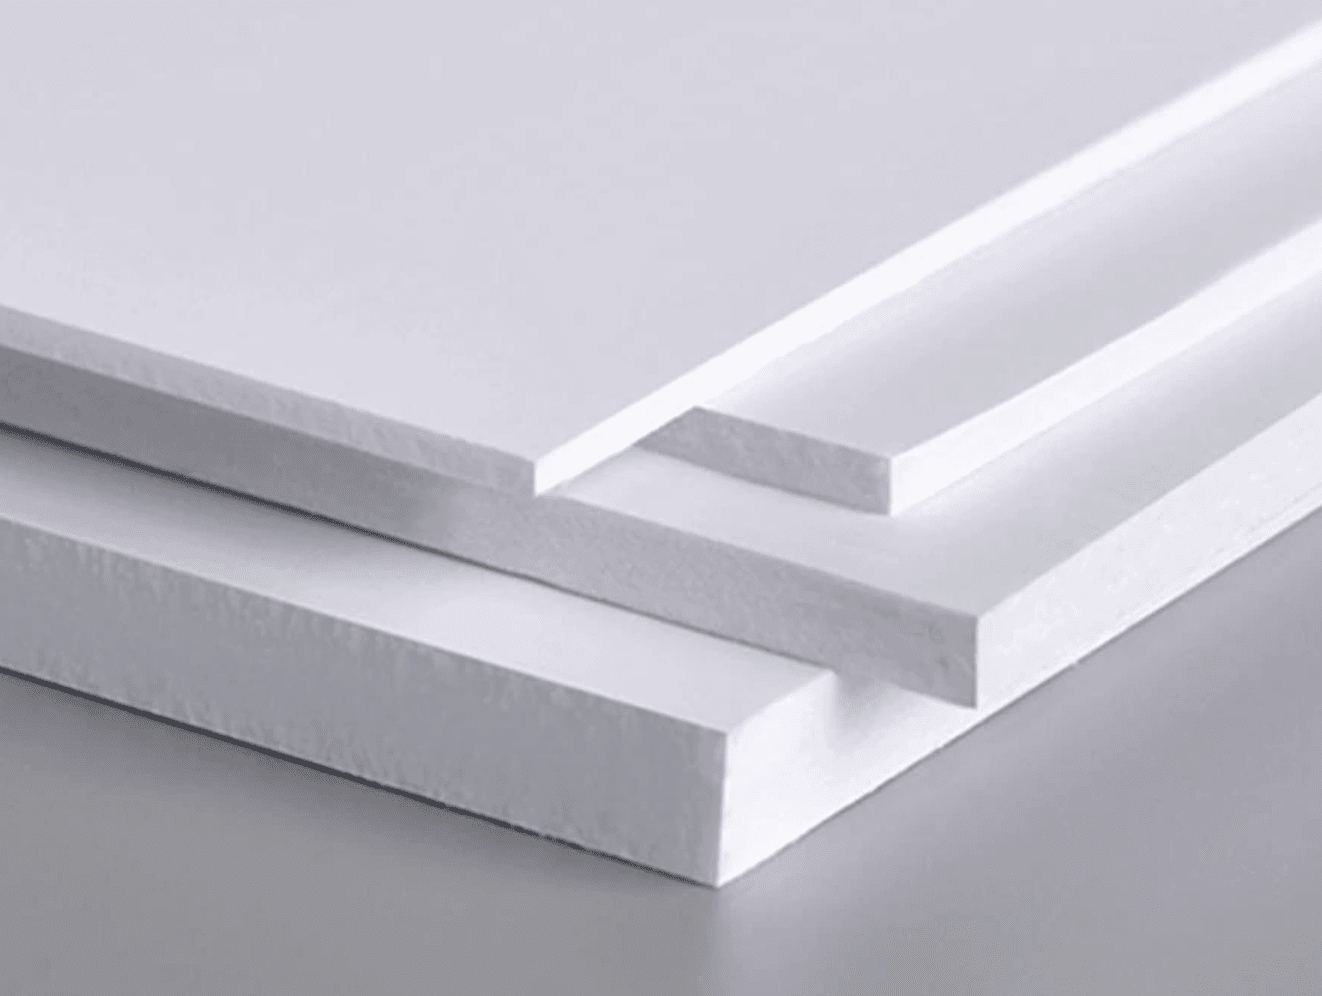 Different thickness PVC boards